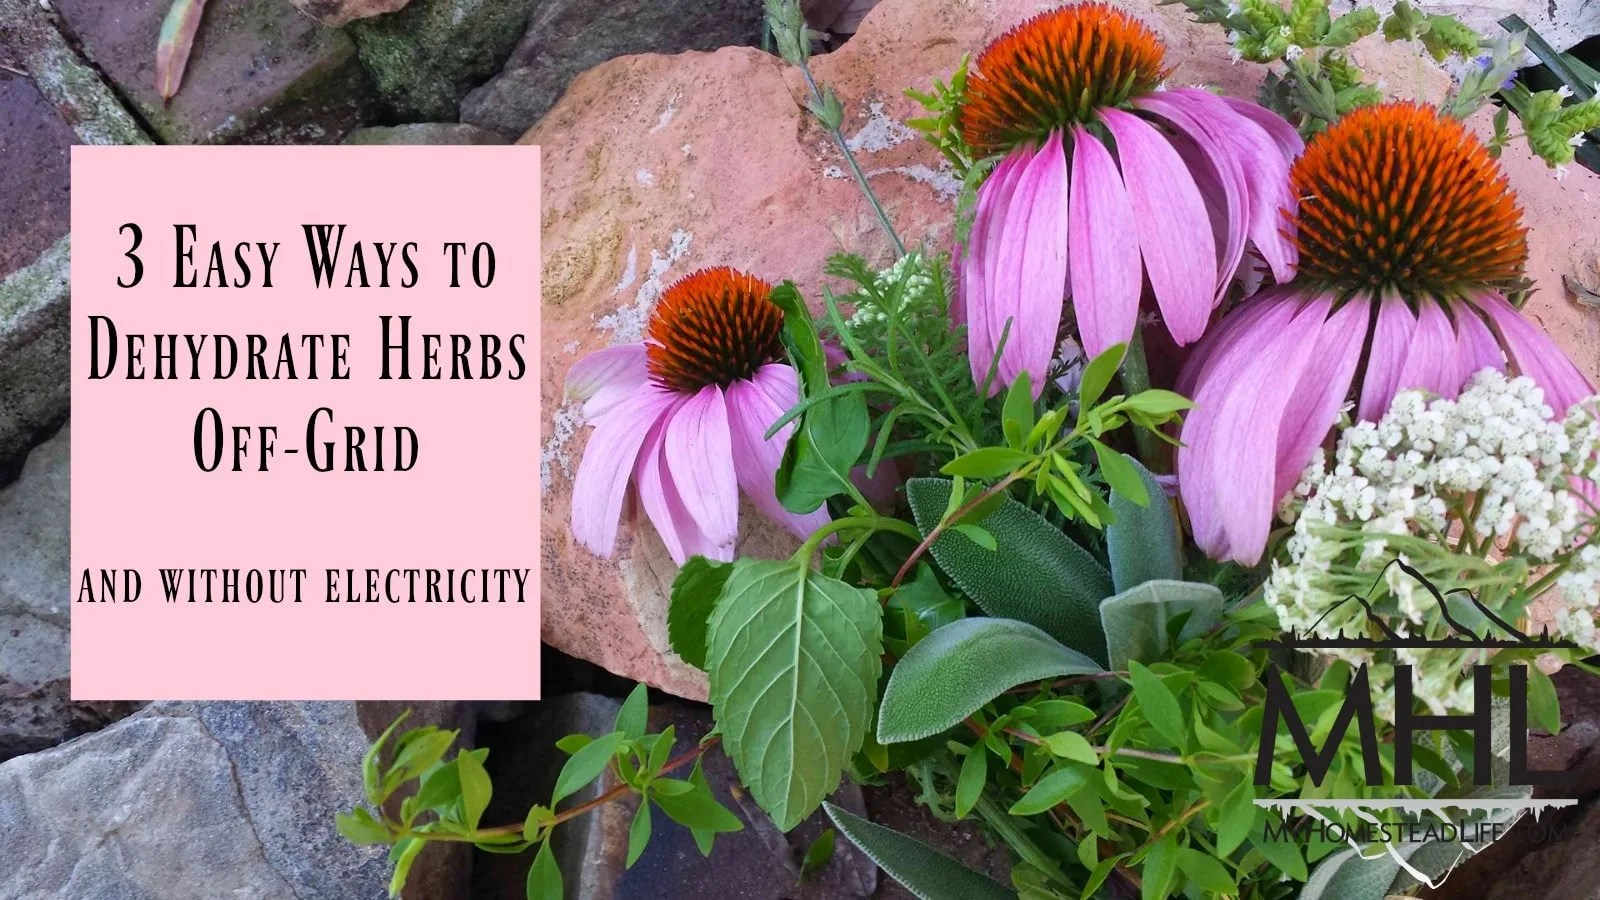 3 Easy Ways to Dehydrate Herbs Off-Grid and Without Electricity